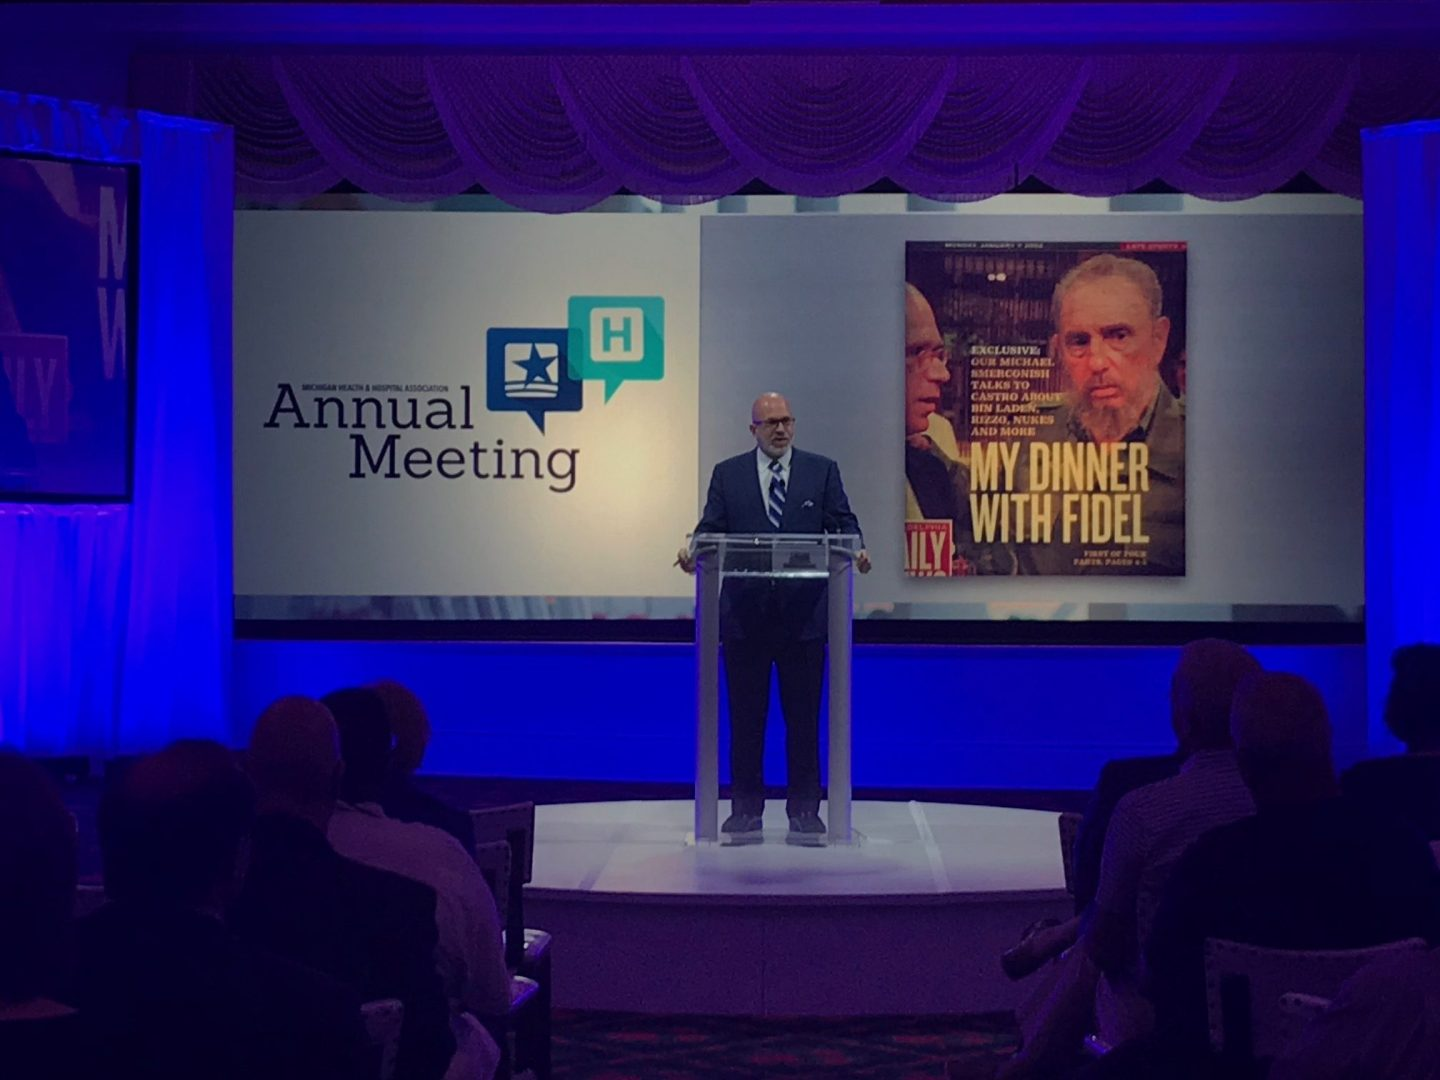 Michael speaking at Michigan Health and Hospital Association's Annual Meeting; Mackinac Island, MI (June 2018)